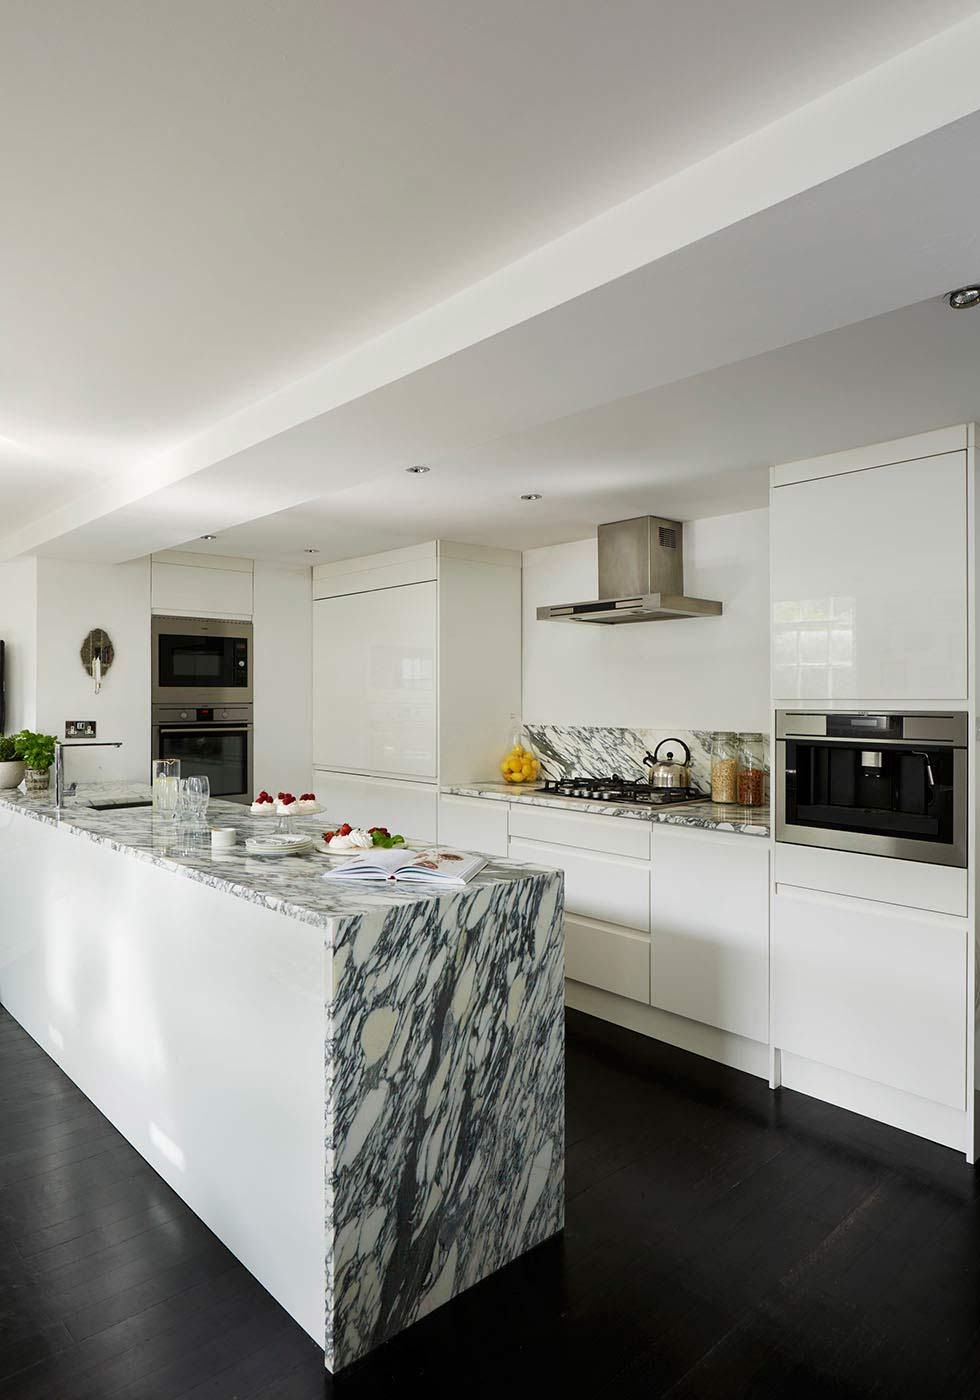 luxury contemporary kitchen under a mezzanine in a school conversion